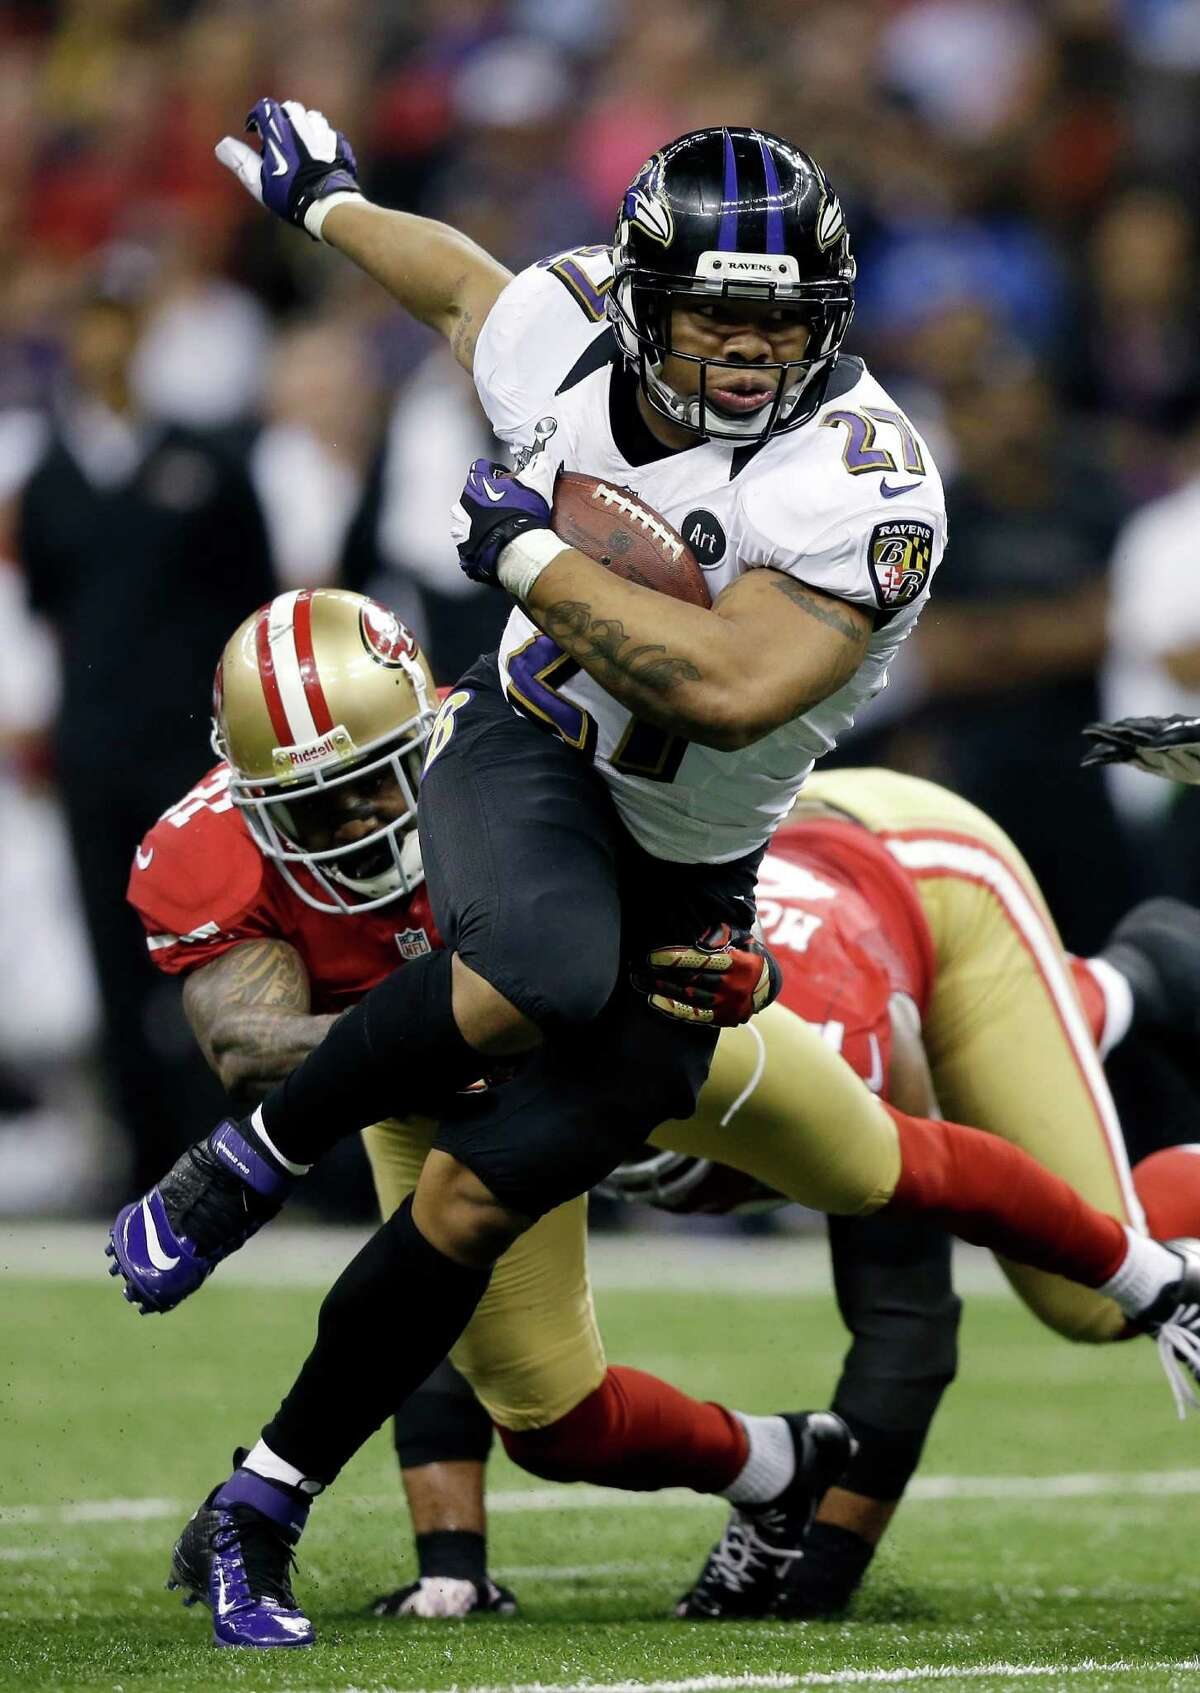 In this Feb. 3, 2013, file photo, Baltimore Ravens running back Ray Rice (27) rushes away from San Francisco 49ers defensive end Ray McDonald (91) during the first half of the NFL Super Bowl XLVII football game in New Orleans. It's an NFL fact of life: If a player has talent, a team can find a place for him, no matter how bad his off-the-field profile. Ray Rice is testing that maxim. Professional athletes don't have an opt-out provision as role models. The kids who watch them on a daily basis look up to these athletes whether the athletes want them to or not.